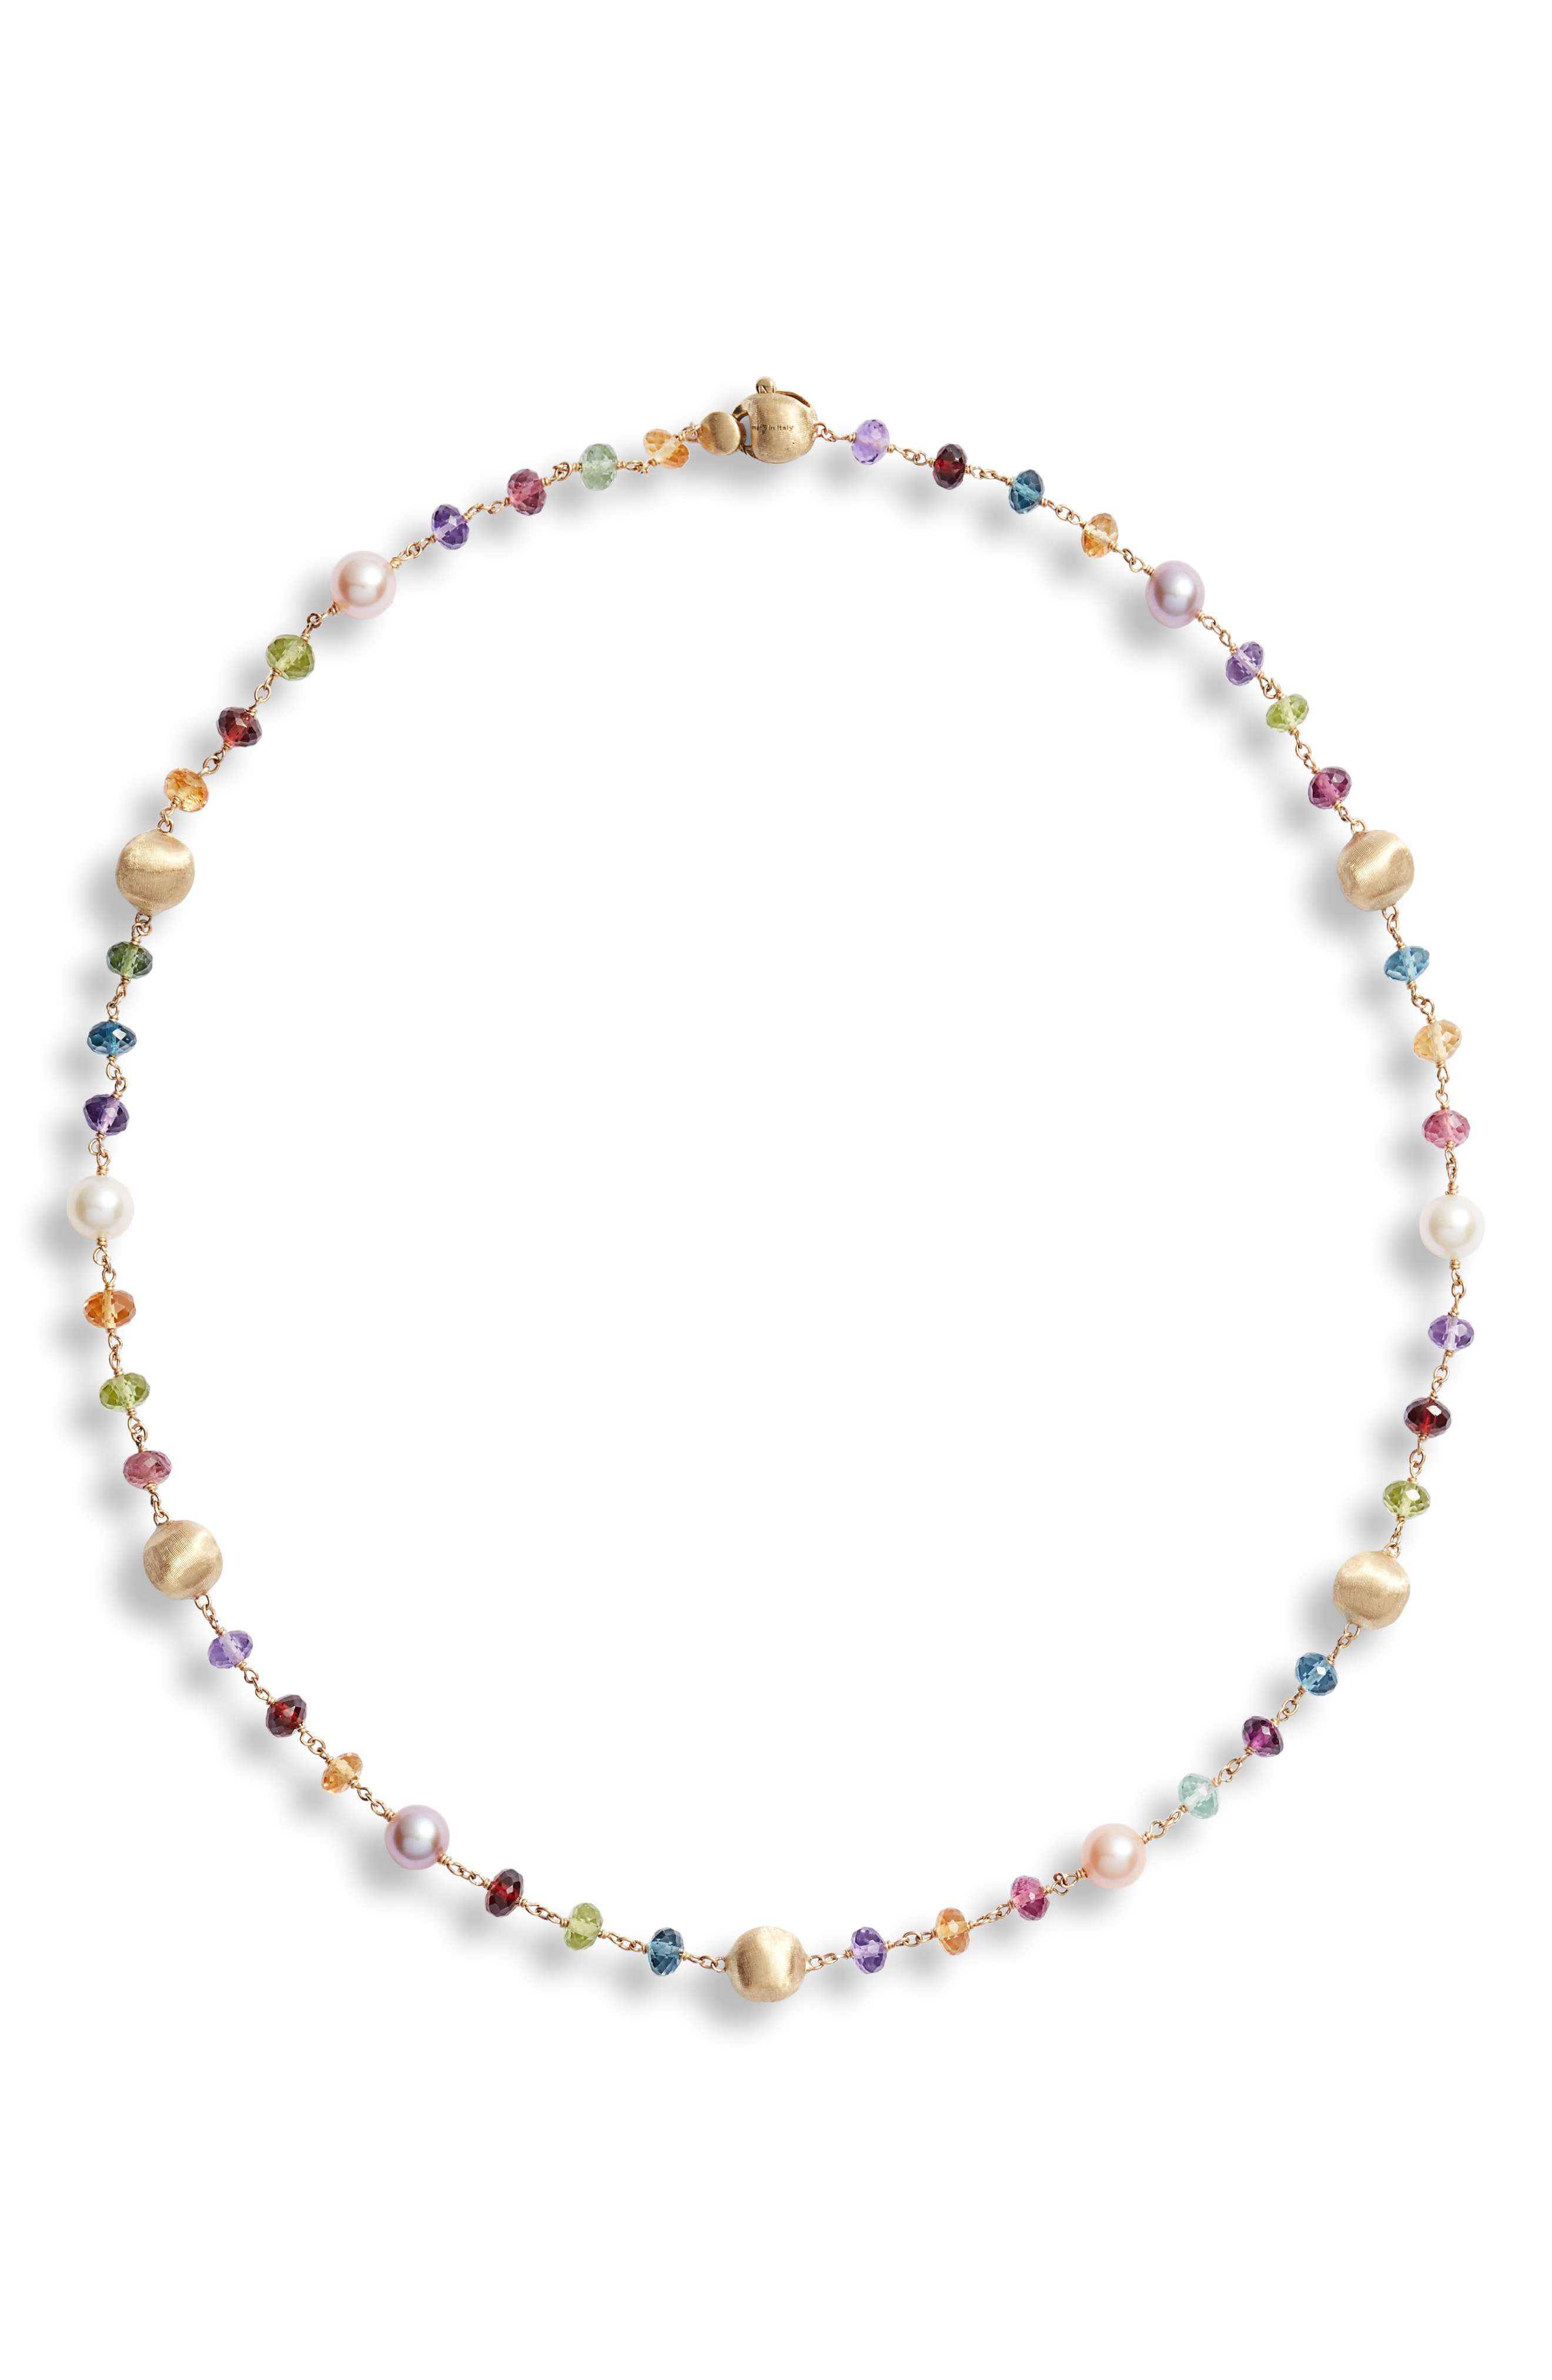 3fae90eb2cc345 Marco Bicego Africa Semiprecious Stone & Pearl Necklace In Yellow Gold/  Multi